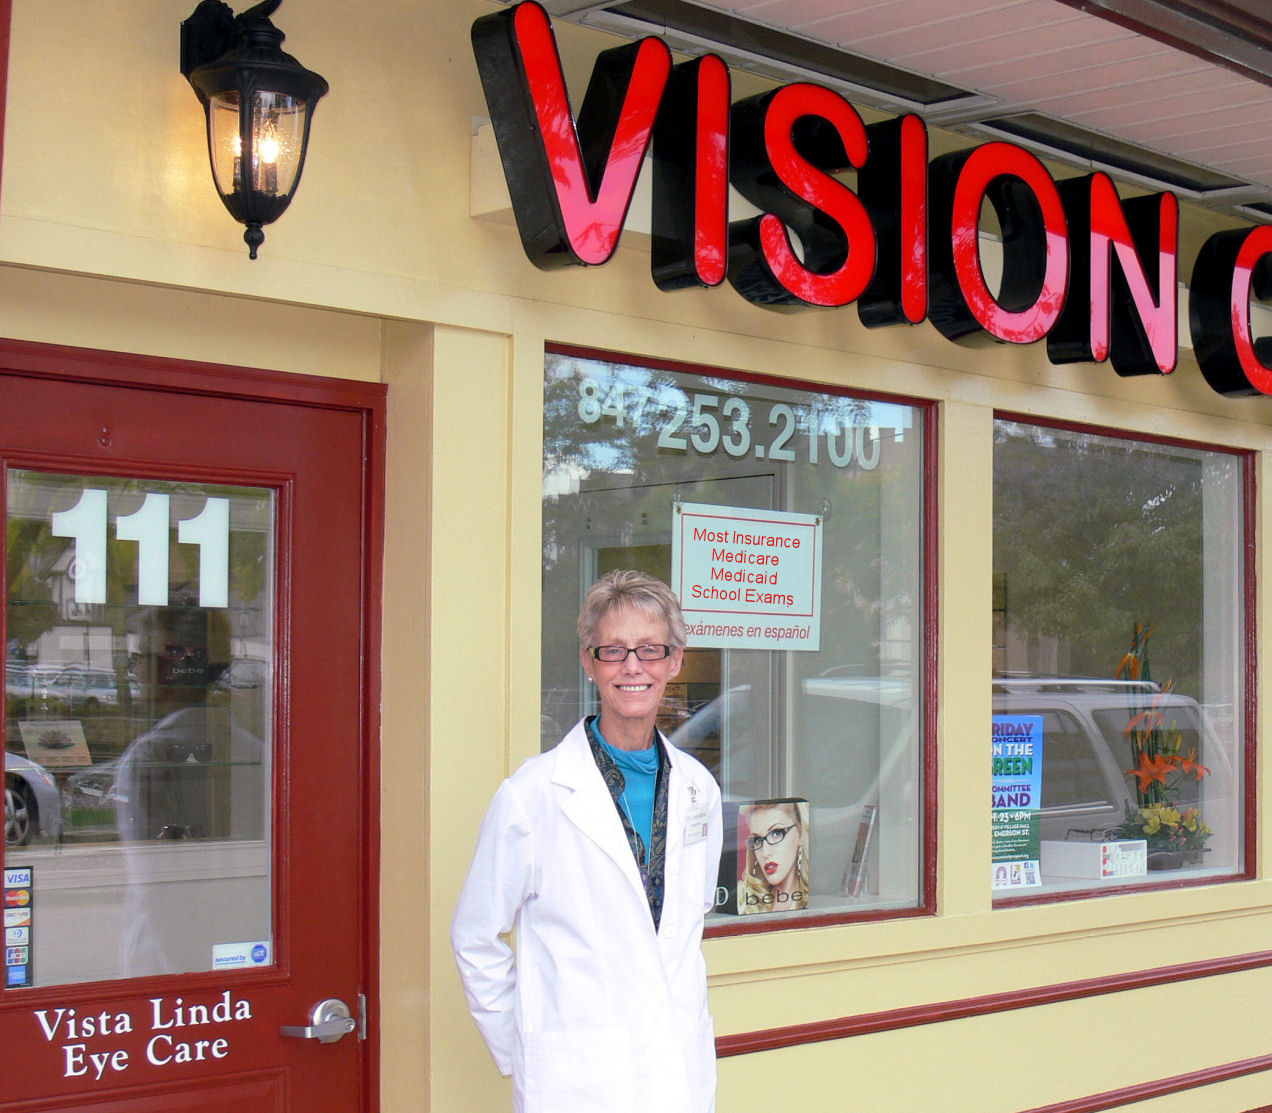 Mount Prospect Supports Local Business Promotions